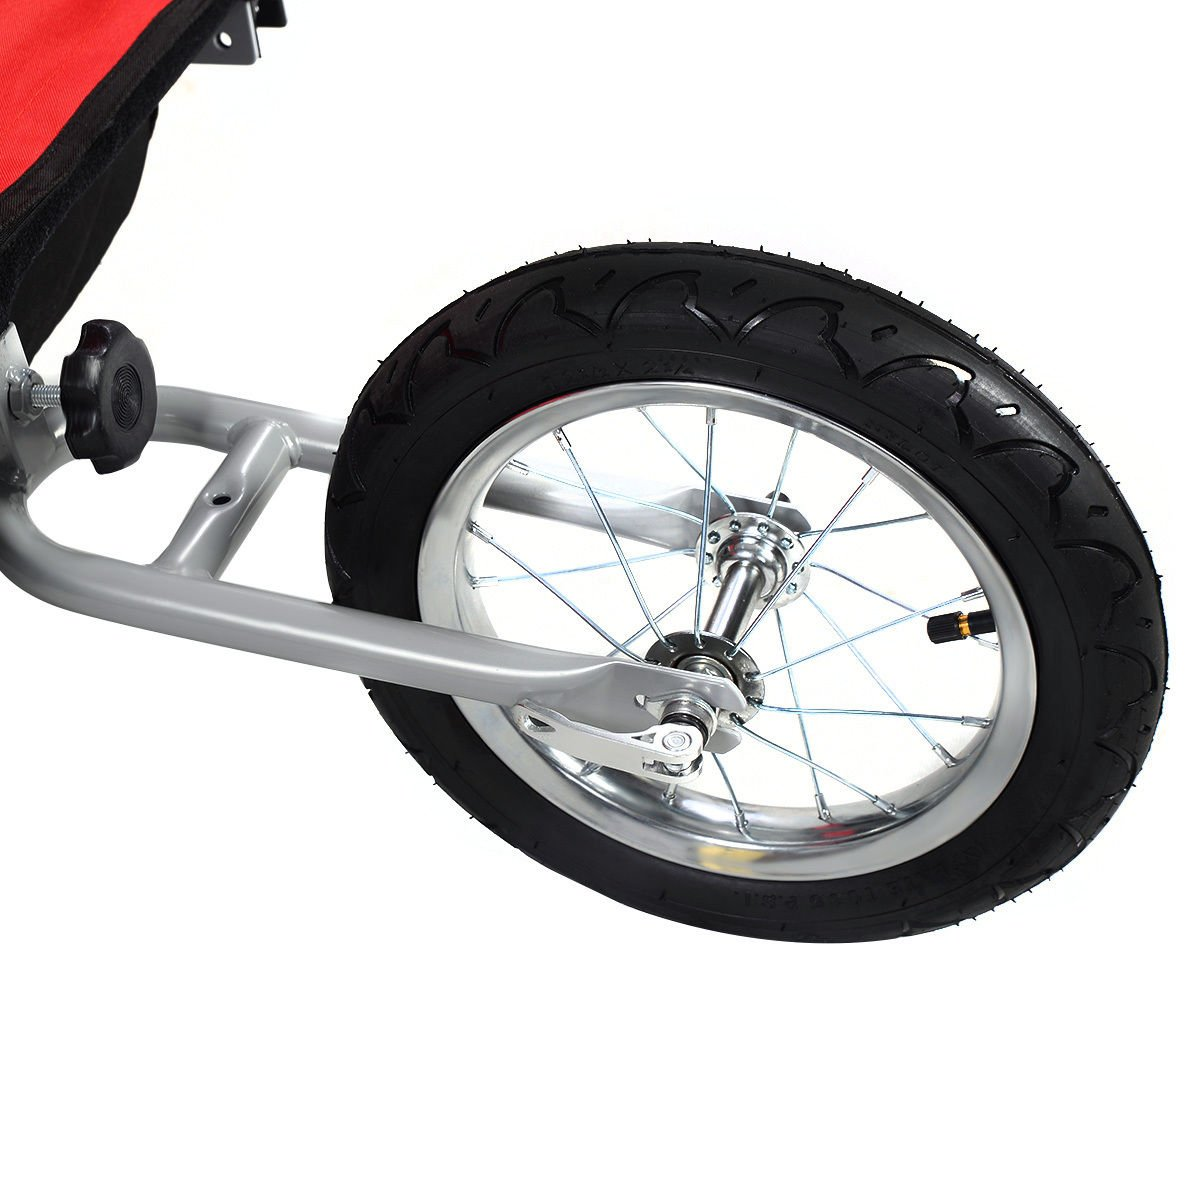 Amazon.com: giantex doble Niño Bebé 2 En 1 bicicleta ...